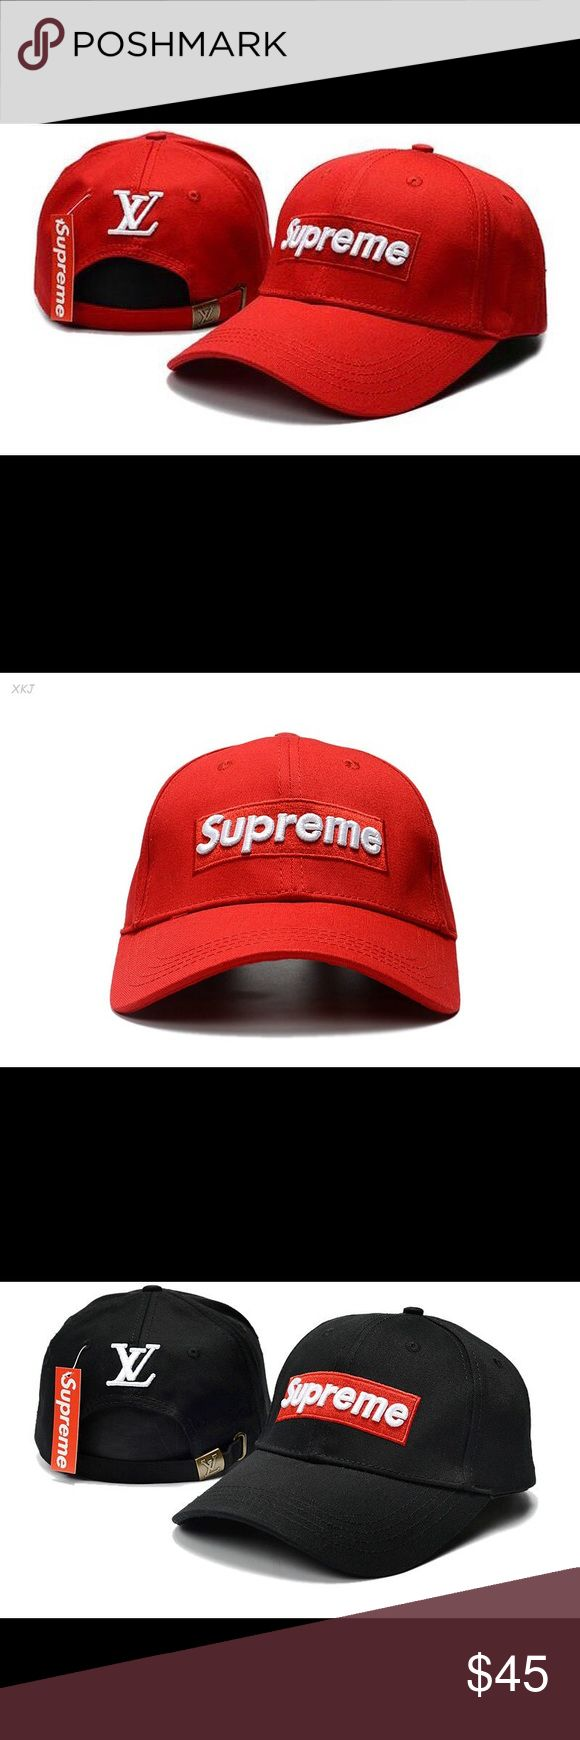 Supreme Baseball Hats Please message me which color you'd like? Red,White or Black? Thank You! Accessories Hats